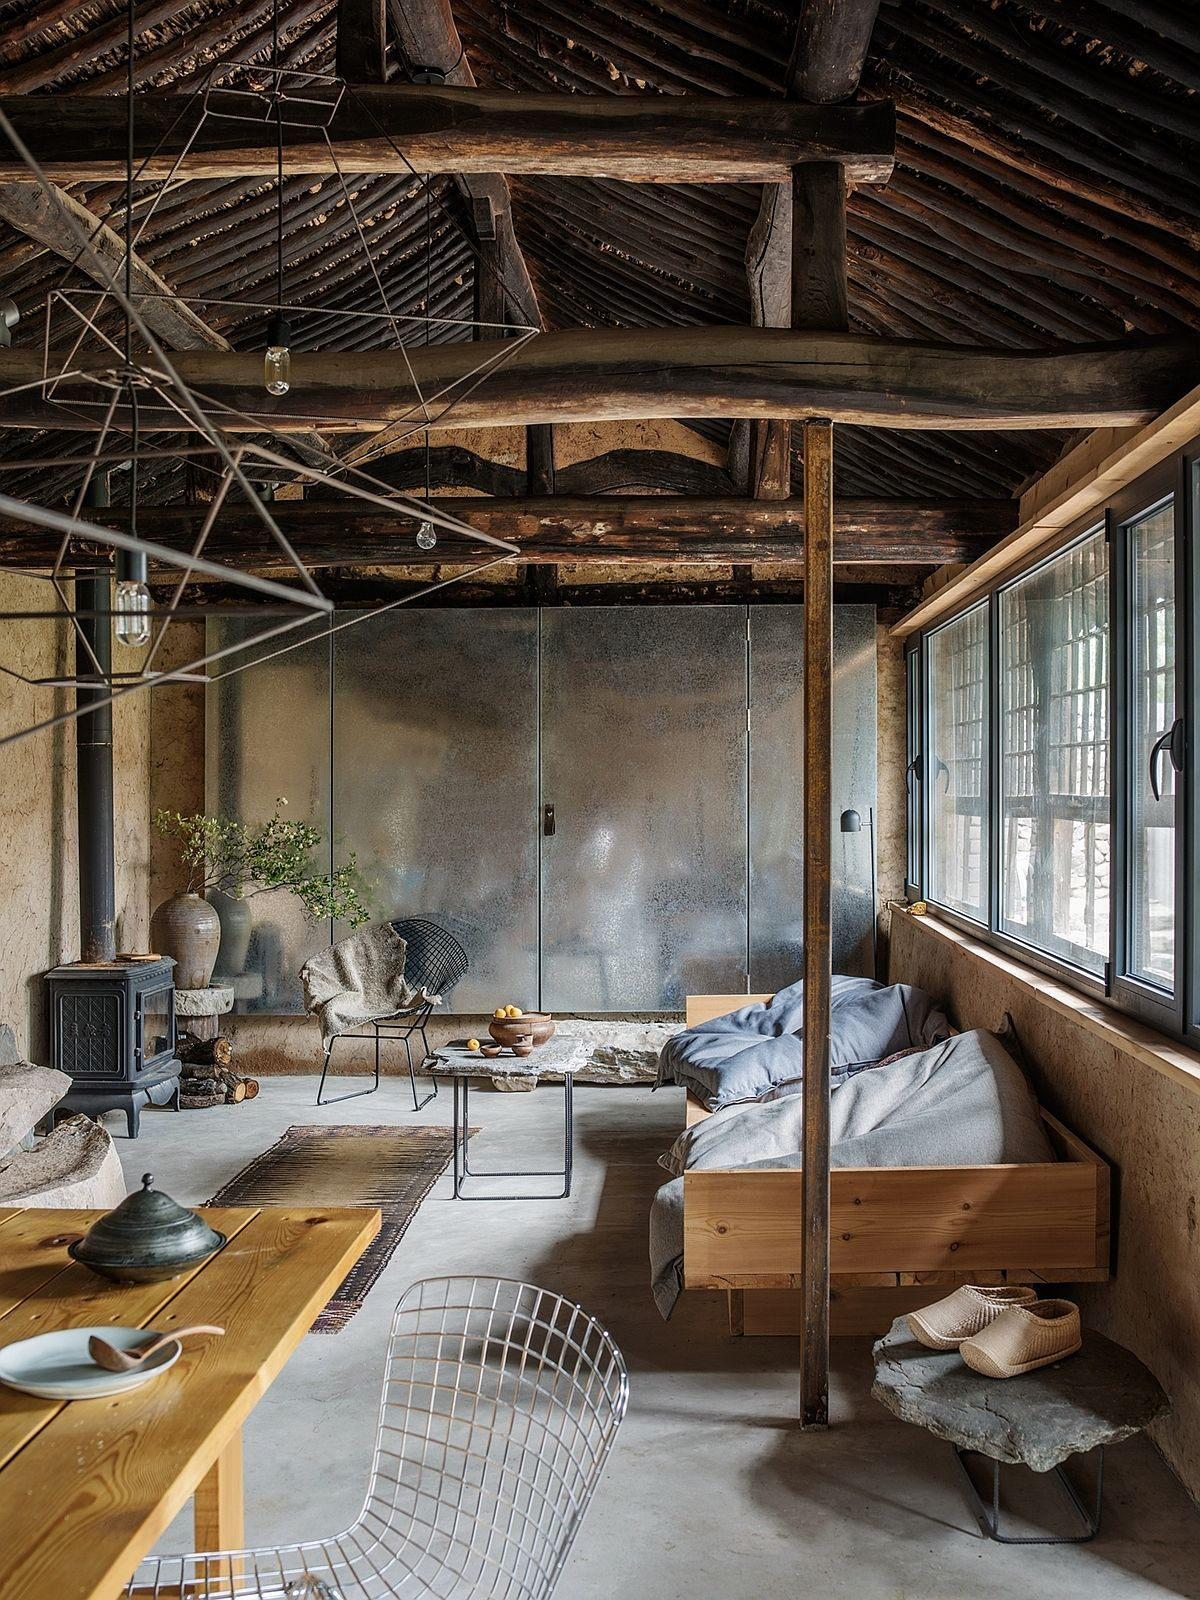 Studio Cottage Giving Abandoned Rural Homes An Aesthetic New Life Amenagement Interieur Decoration Interieure Moderne Maison